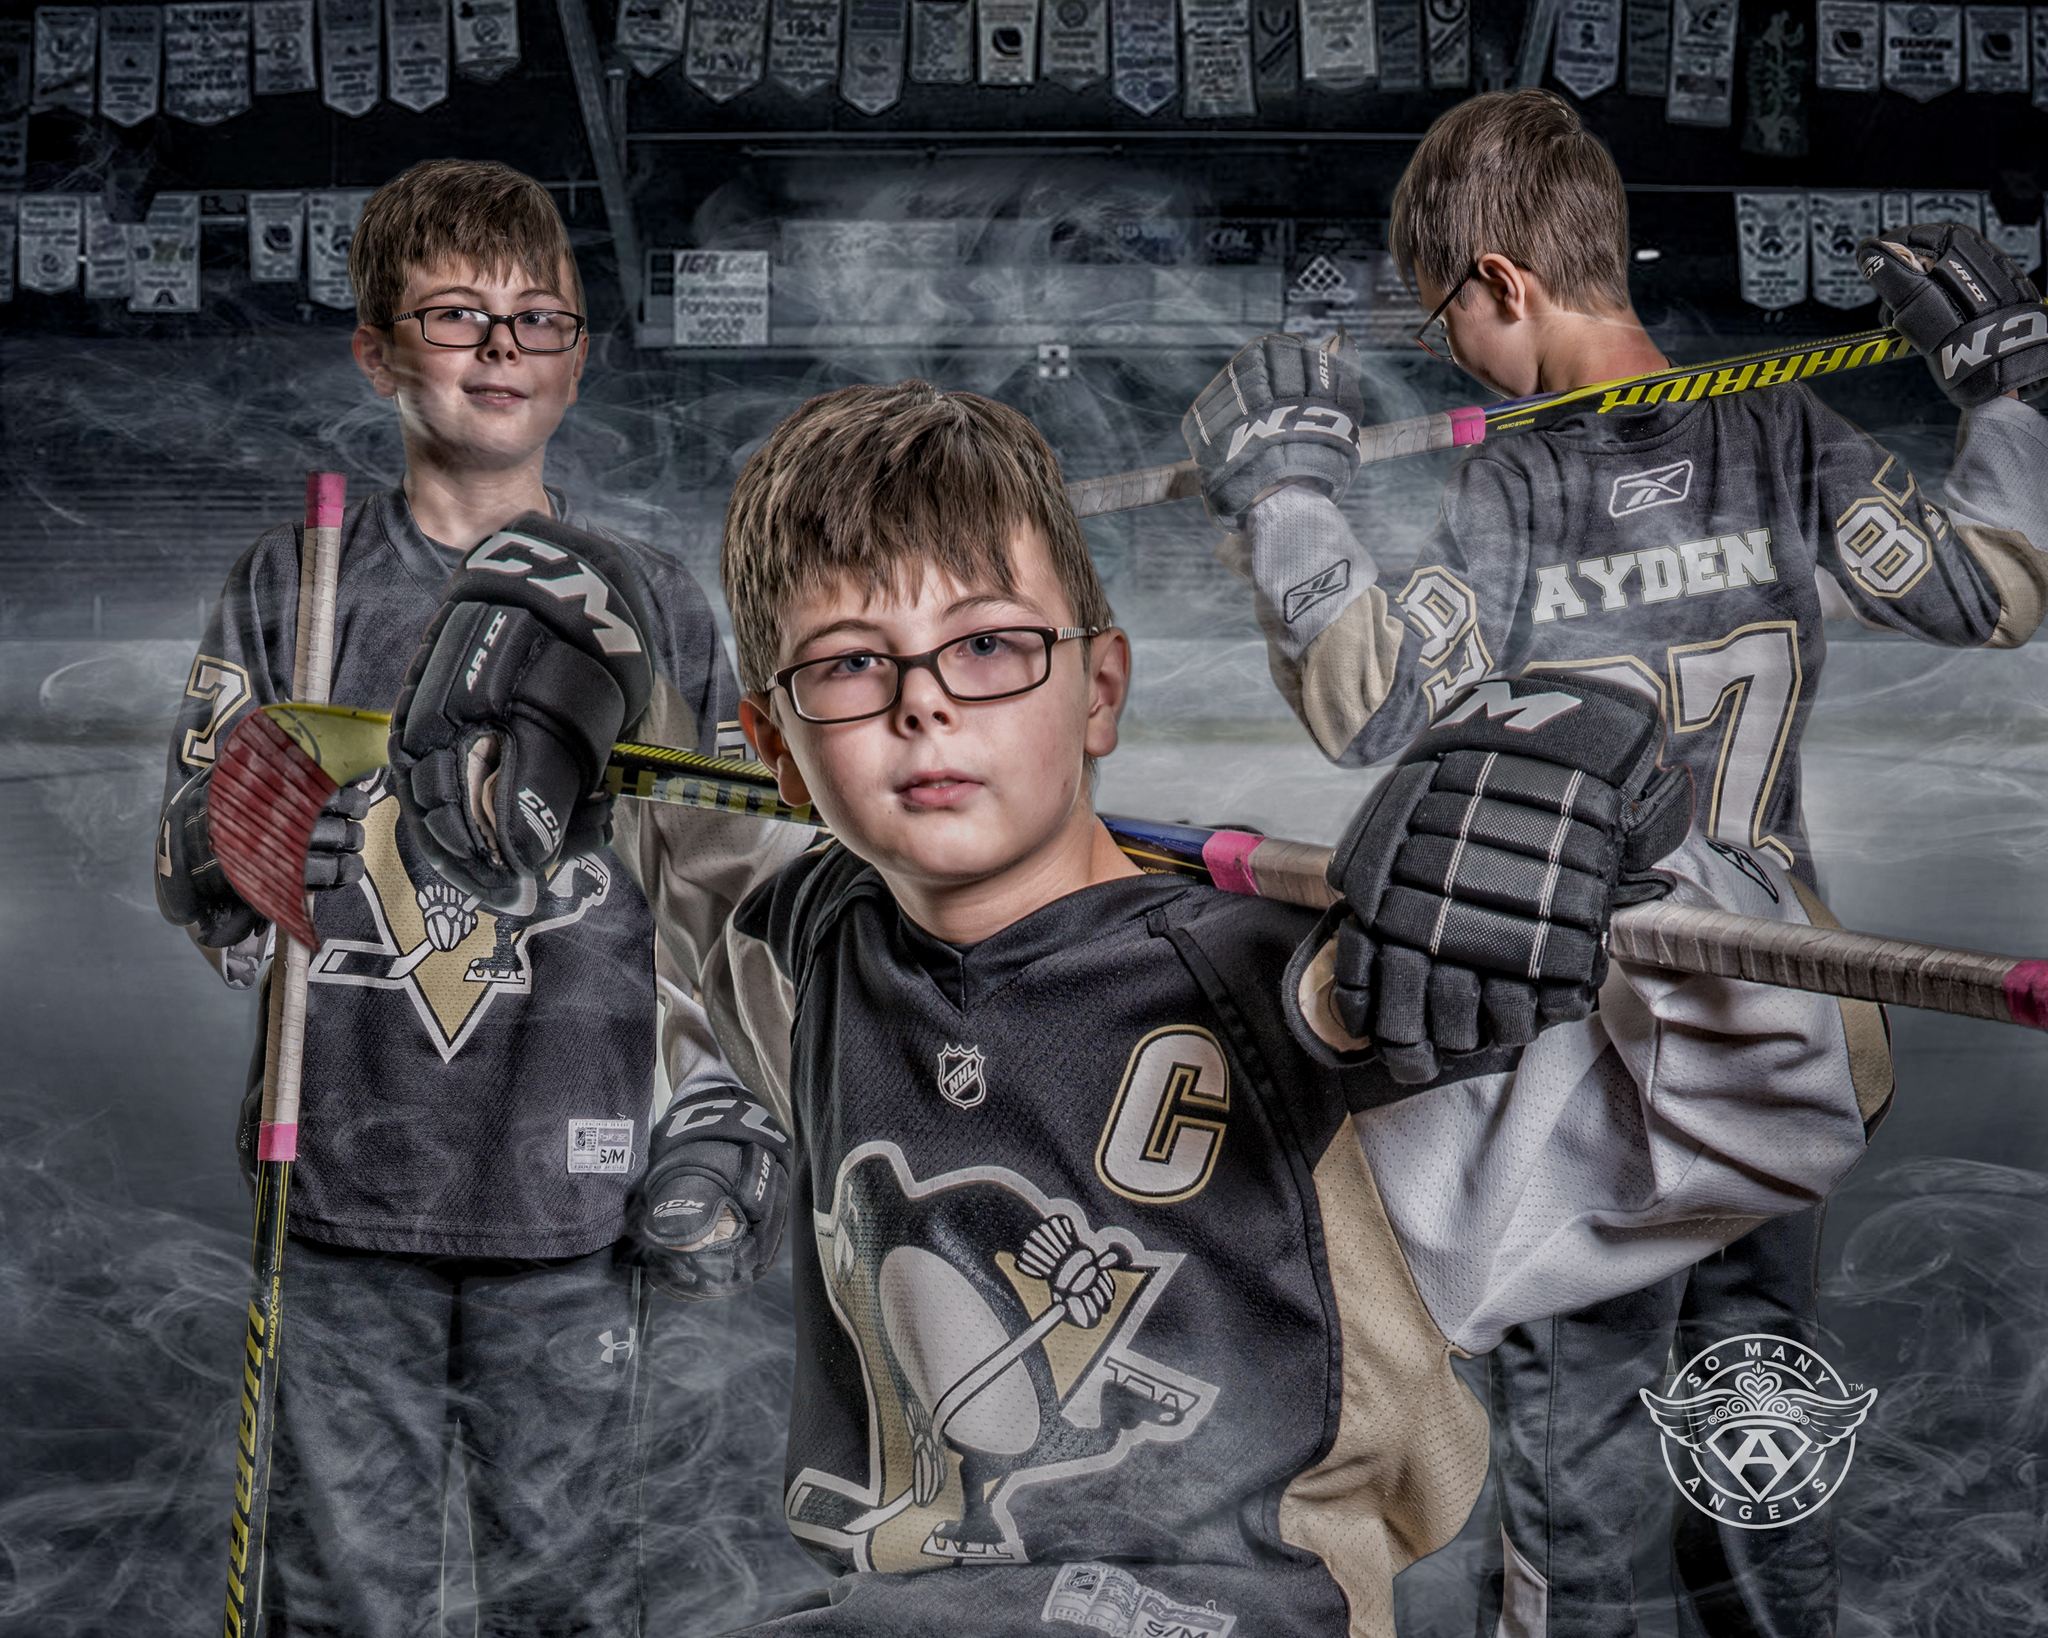 Ayden-Hockey-Penguins-2048.jpg